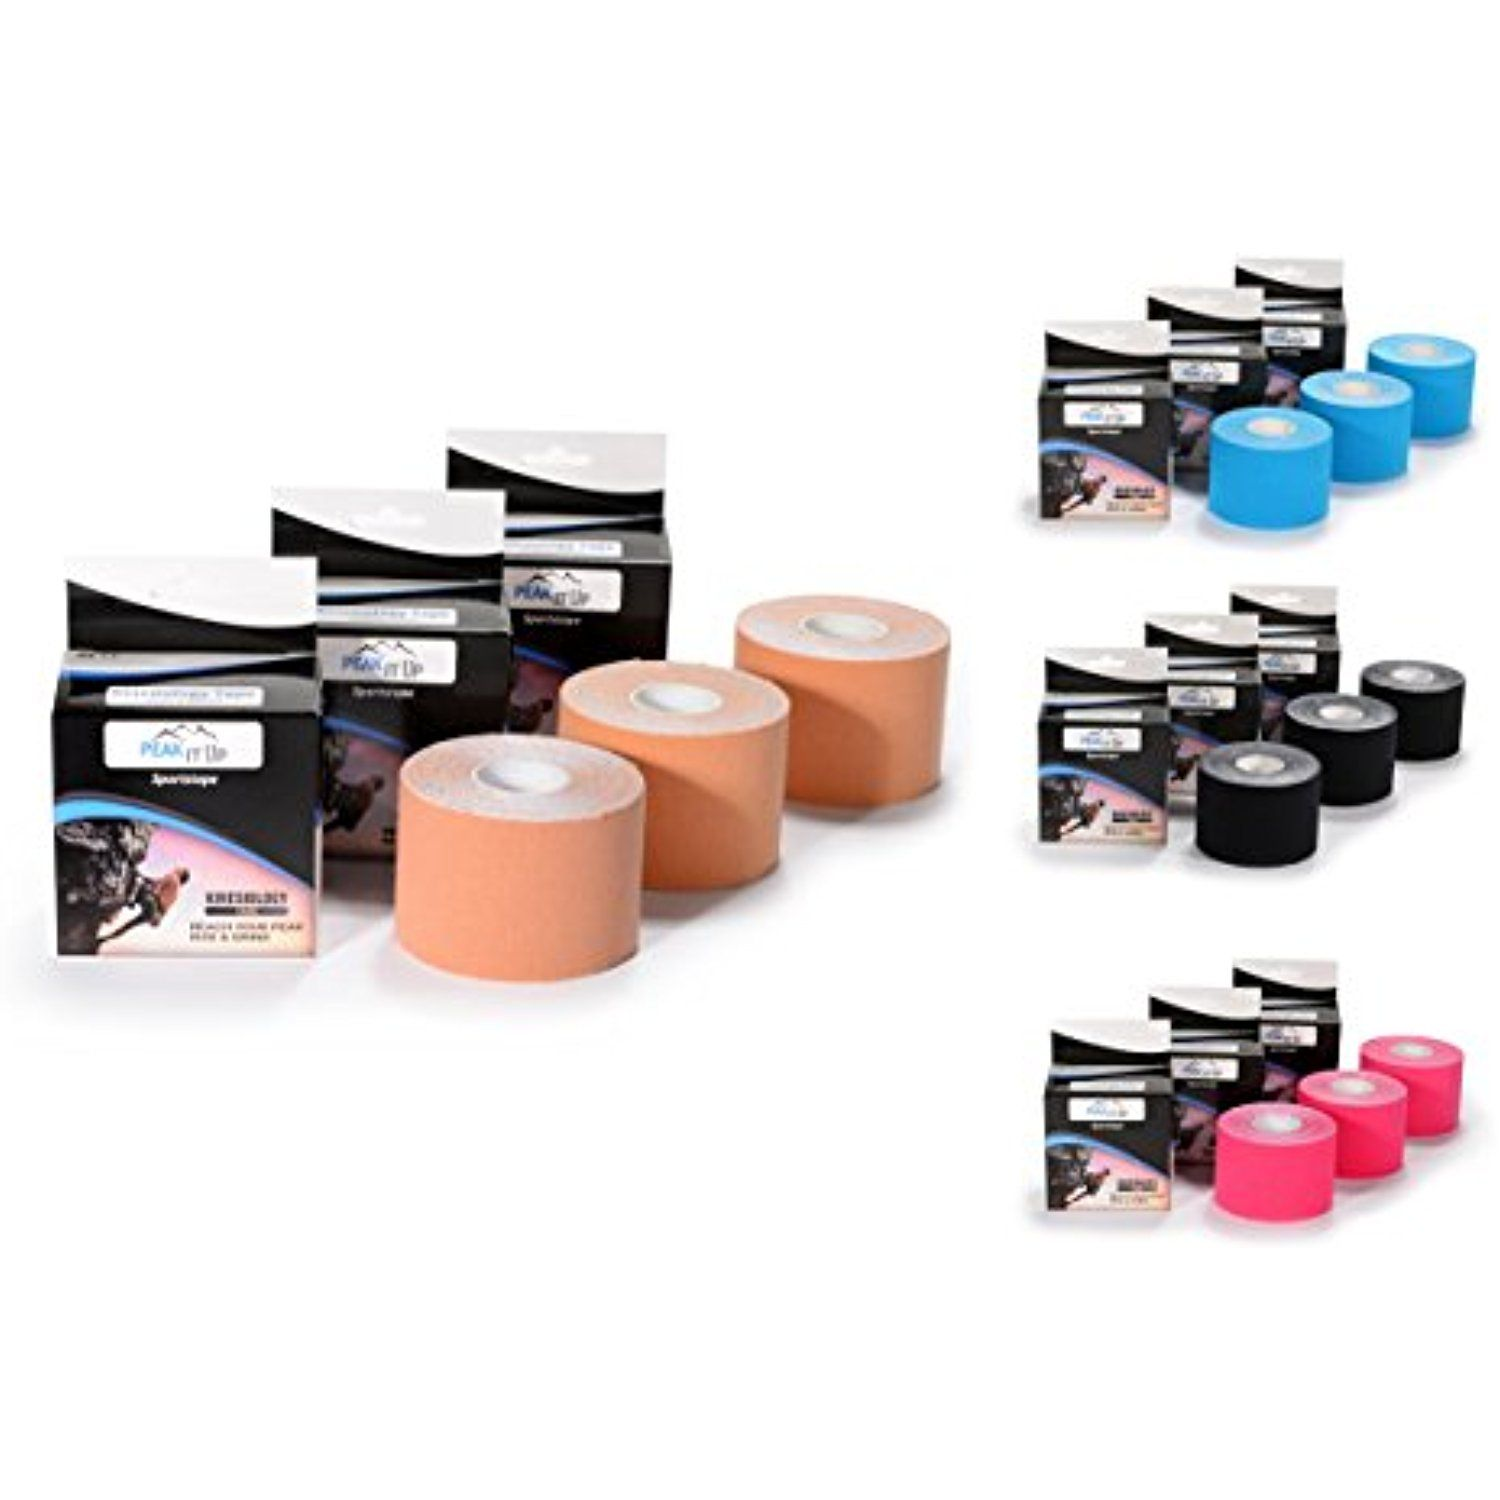 "Professional Grade Kinesiology Tape 2"" x 16 5 3 Pack Read more"